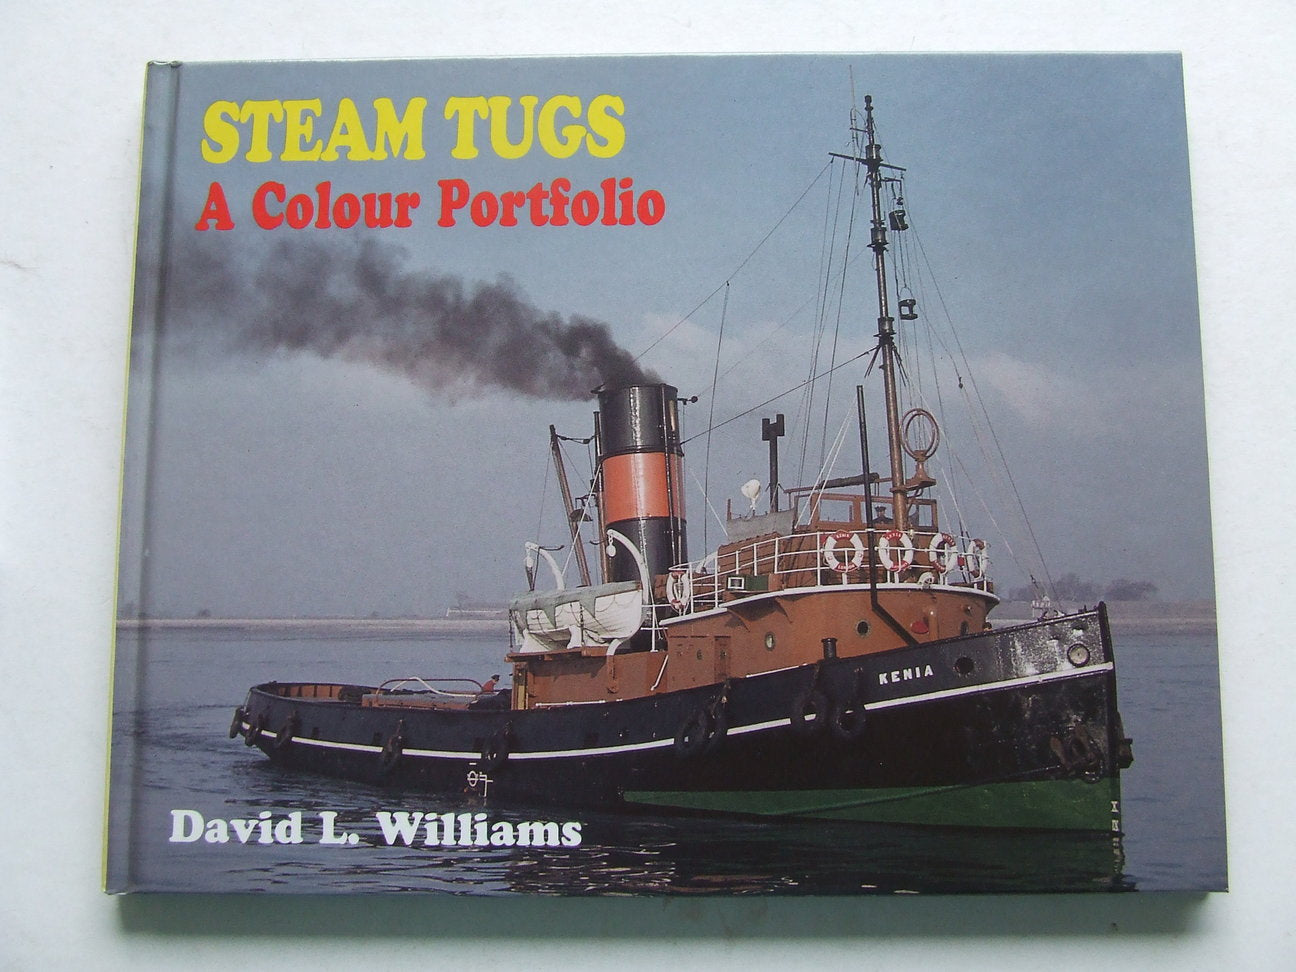 Steam Tugs, a colour portfolio